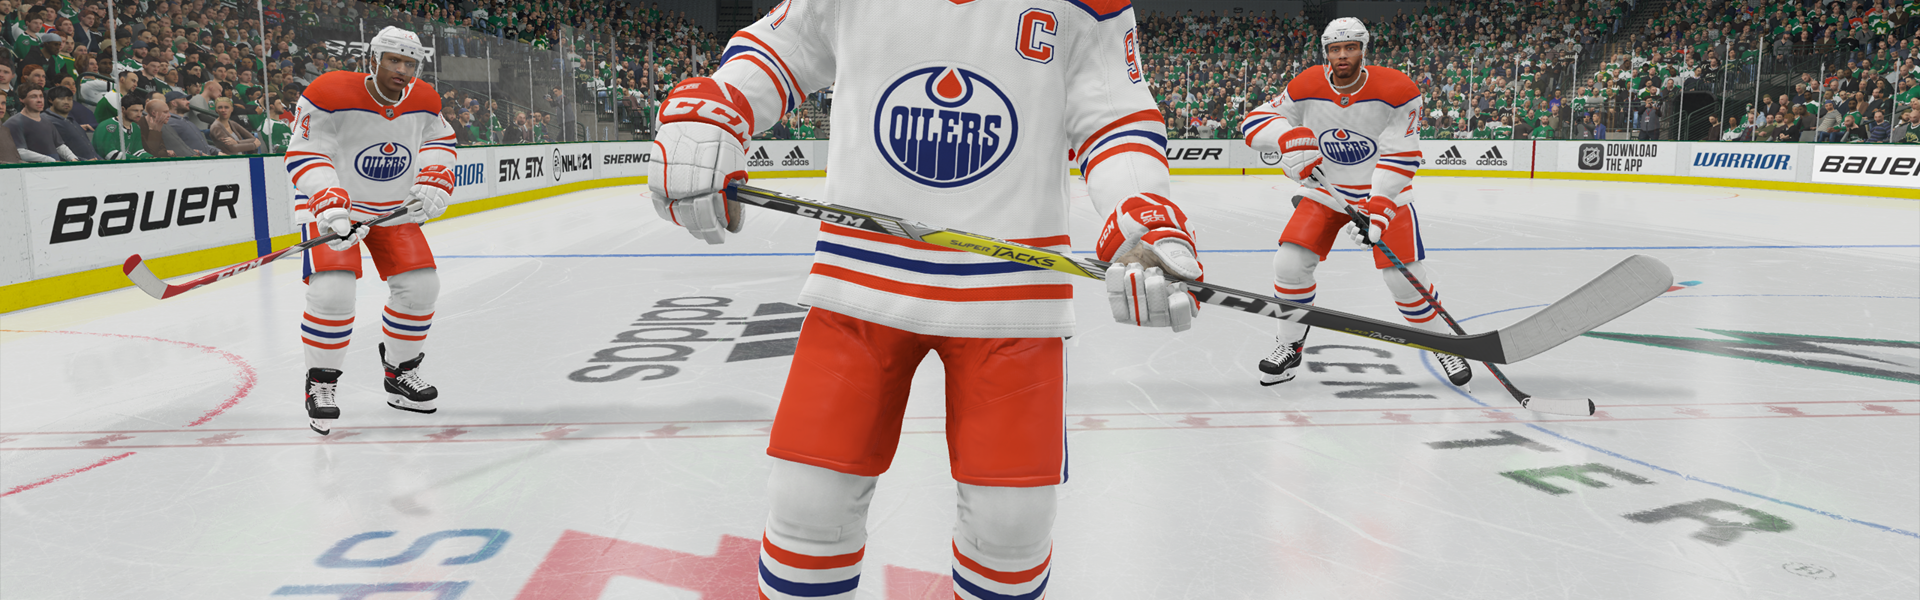 NHL 21 - The Oilers in their Retro Reverse jerseys